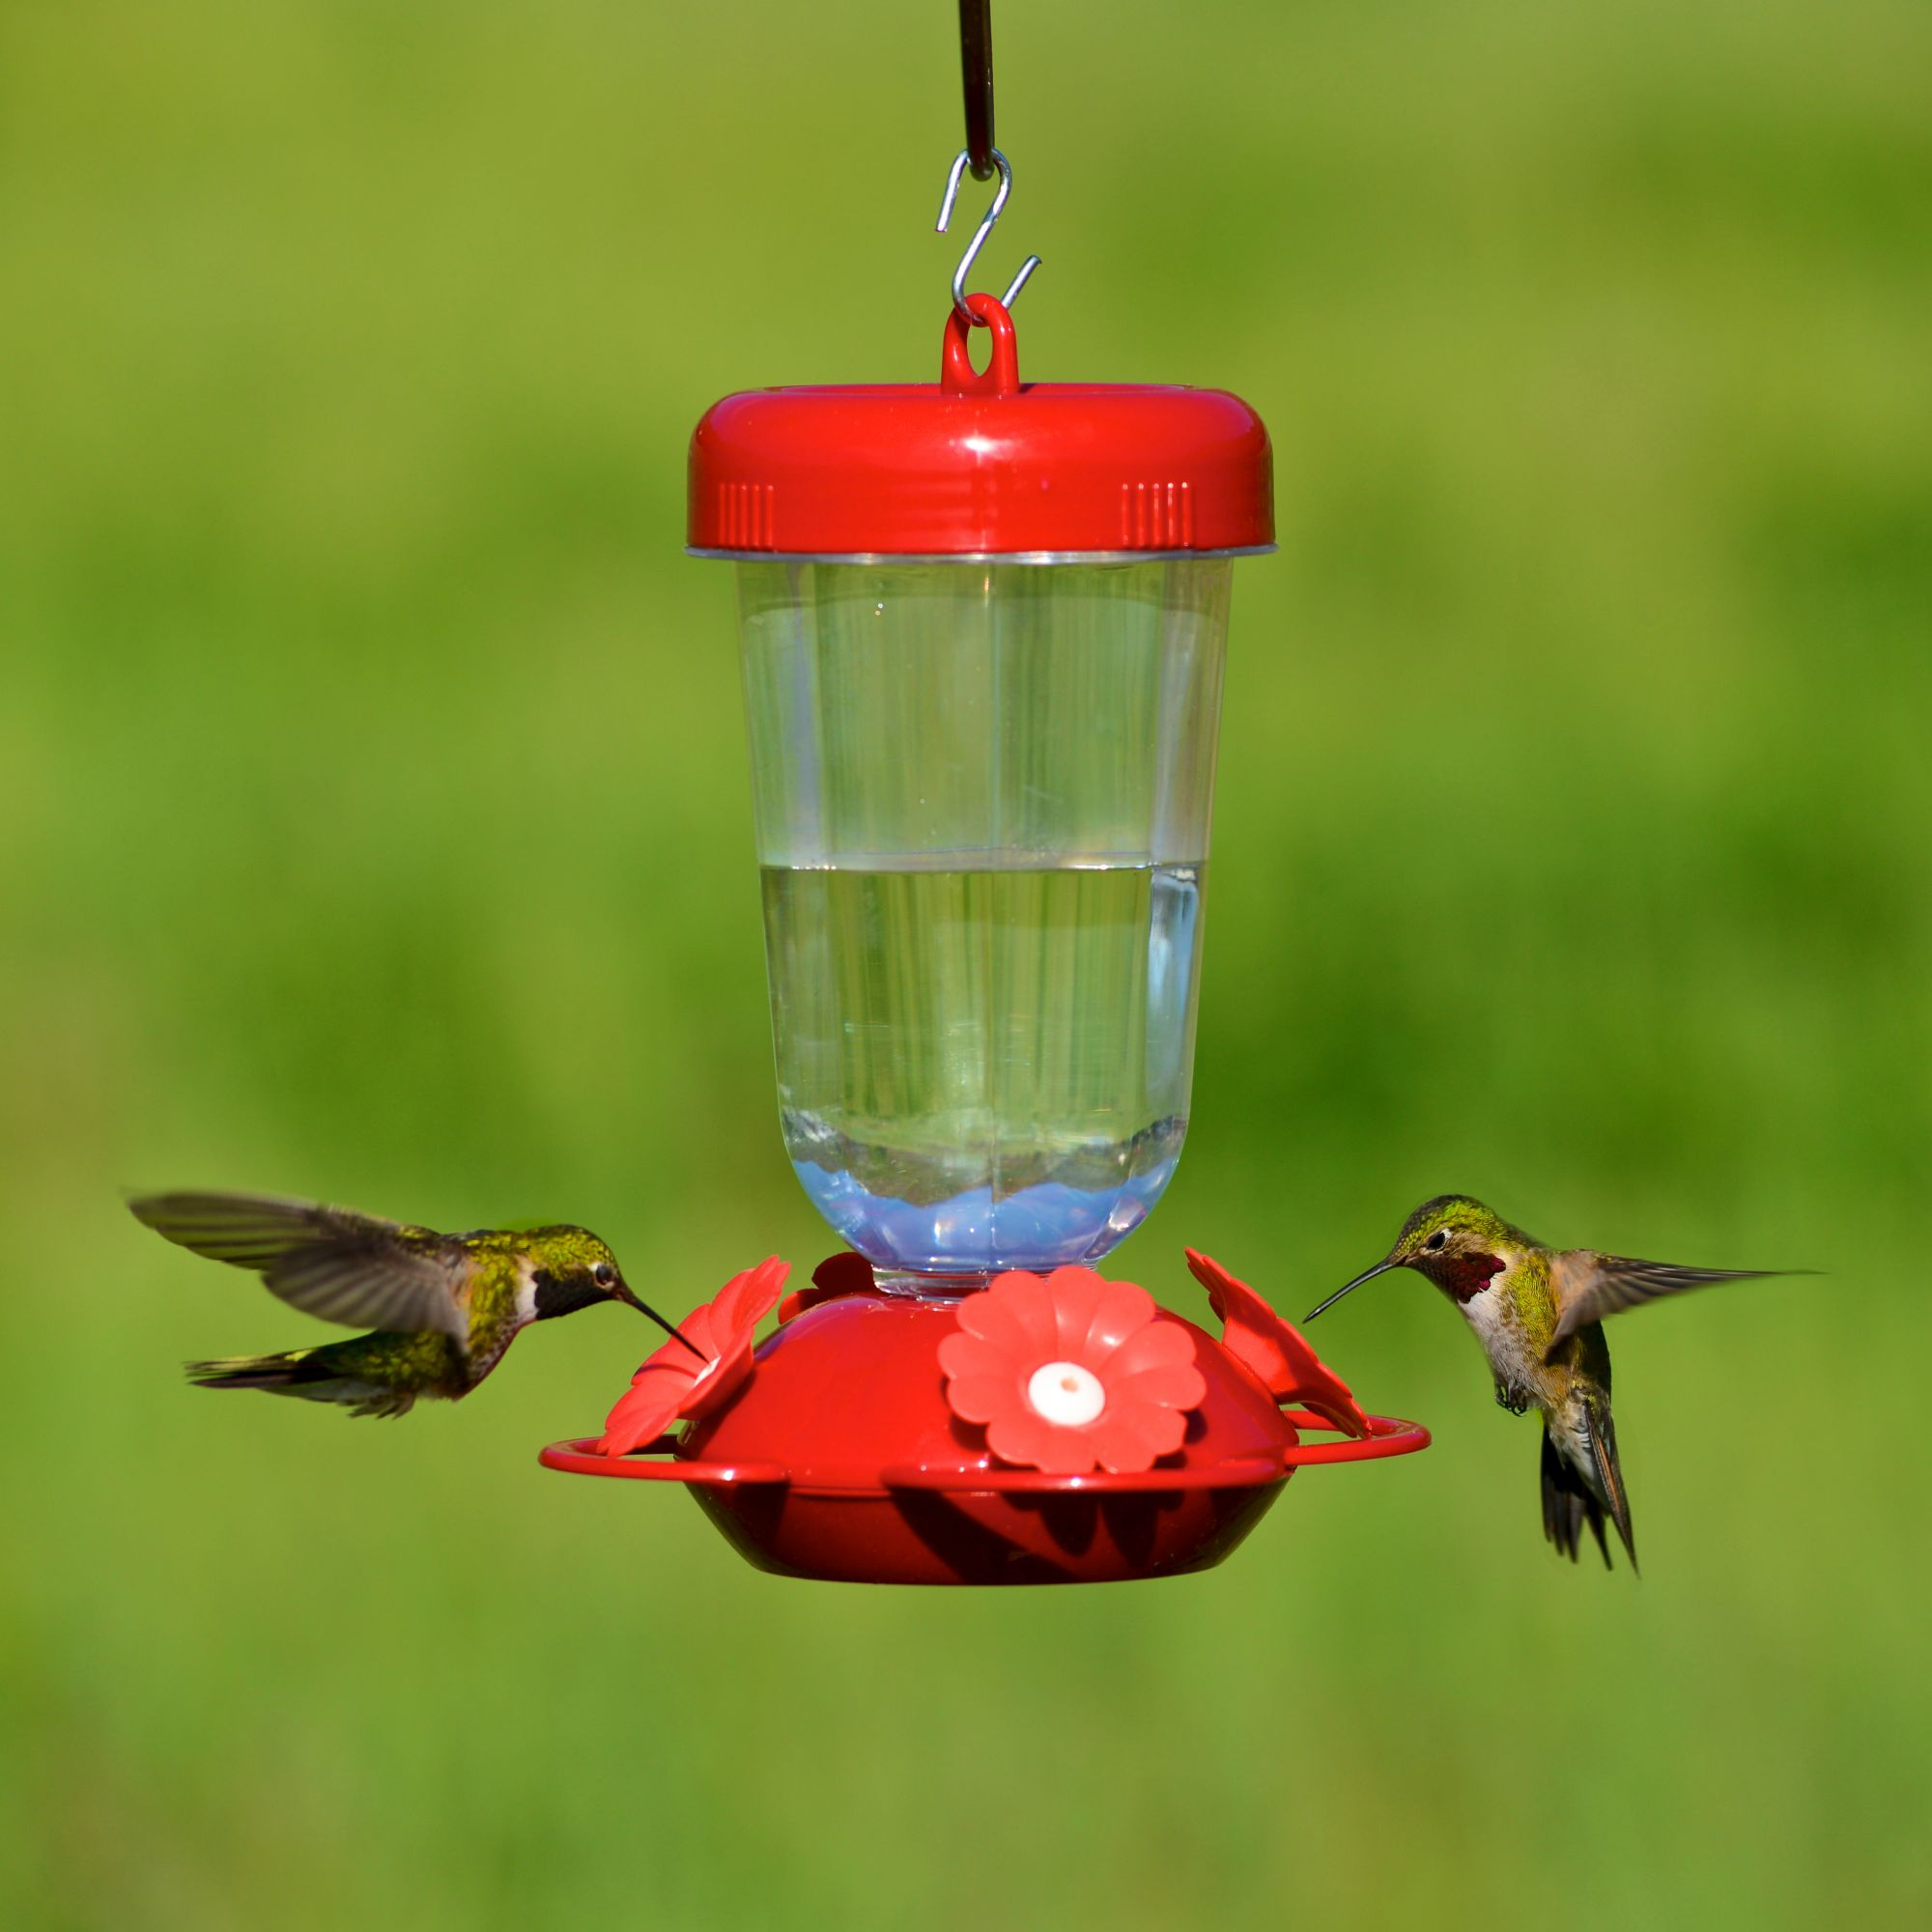 bird with ounces reviews premium red of blown hand decorative product feeders rave hummingbirds yellow nectar by home feeder pet unique best glass birds globe and products natures hummingbird